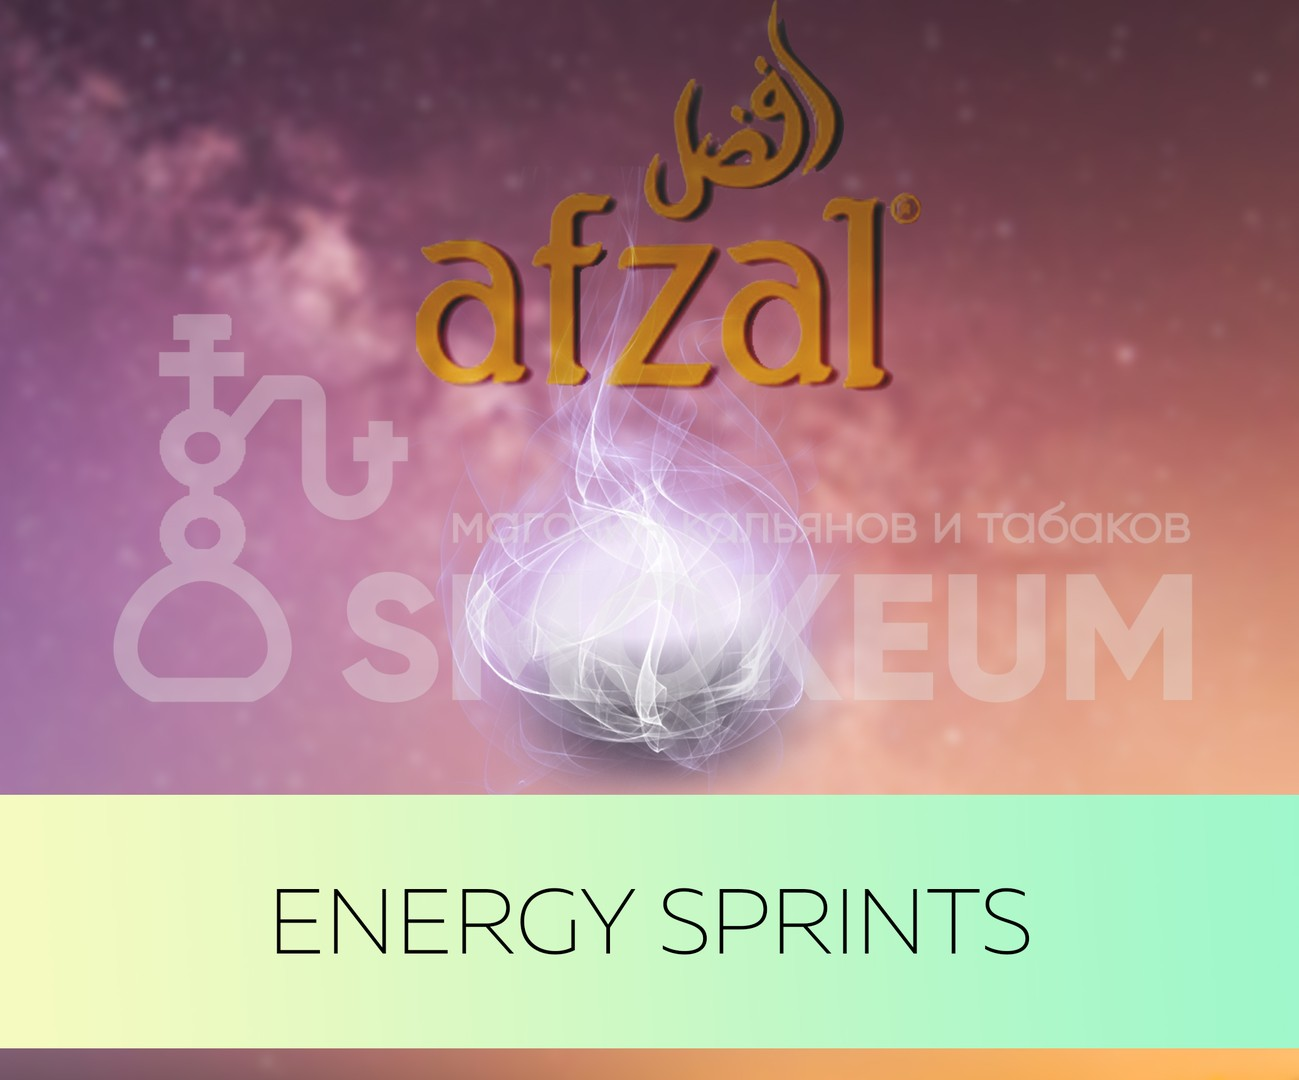 Табак Afzal - Energy Sprints (Энергетик) 50 гр